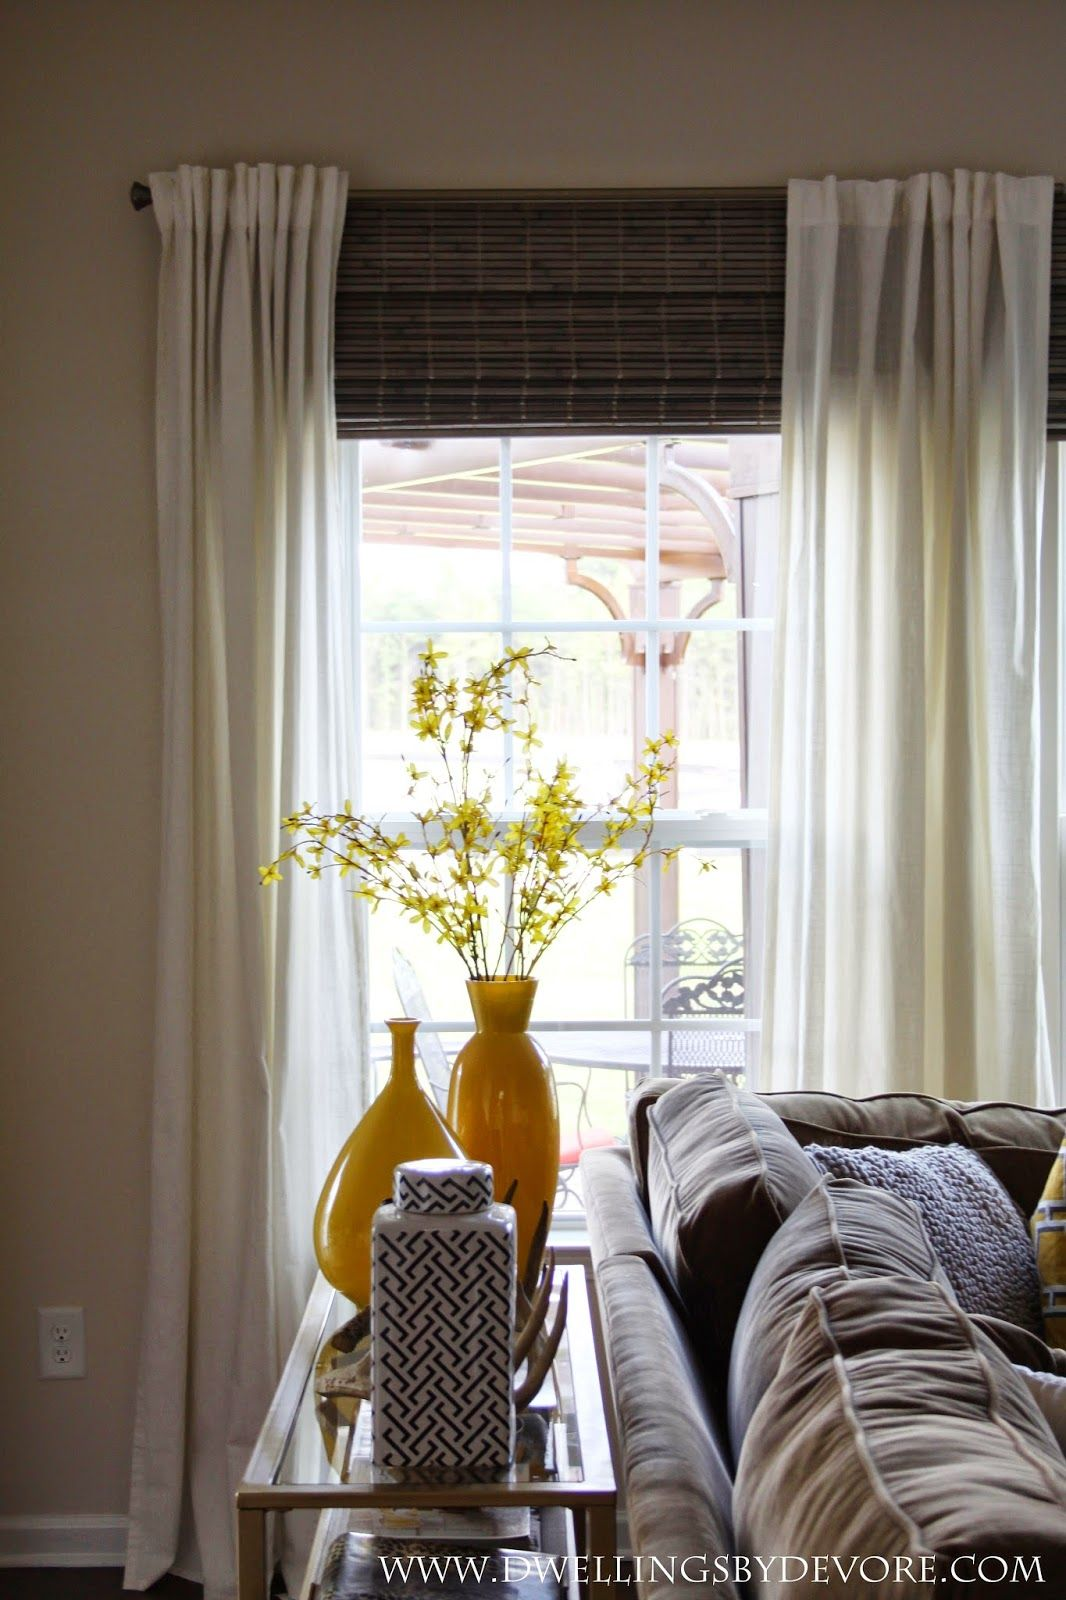 Dwellings By Devore Bamboo Shades To Make Your Windows Look Larger Like At Our Old House